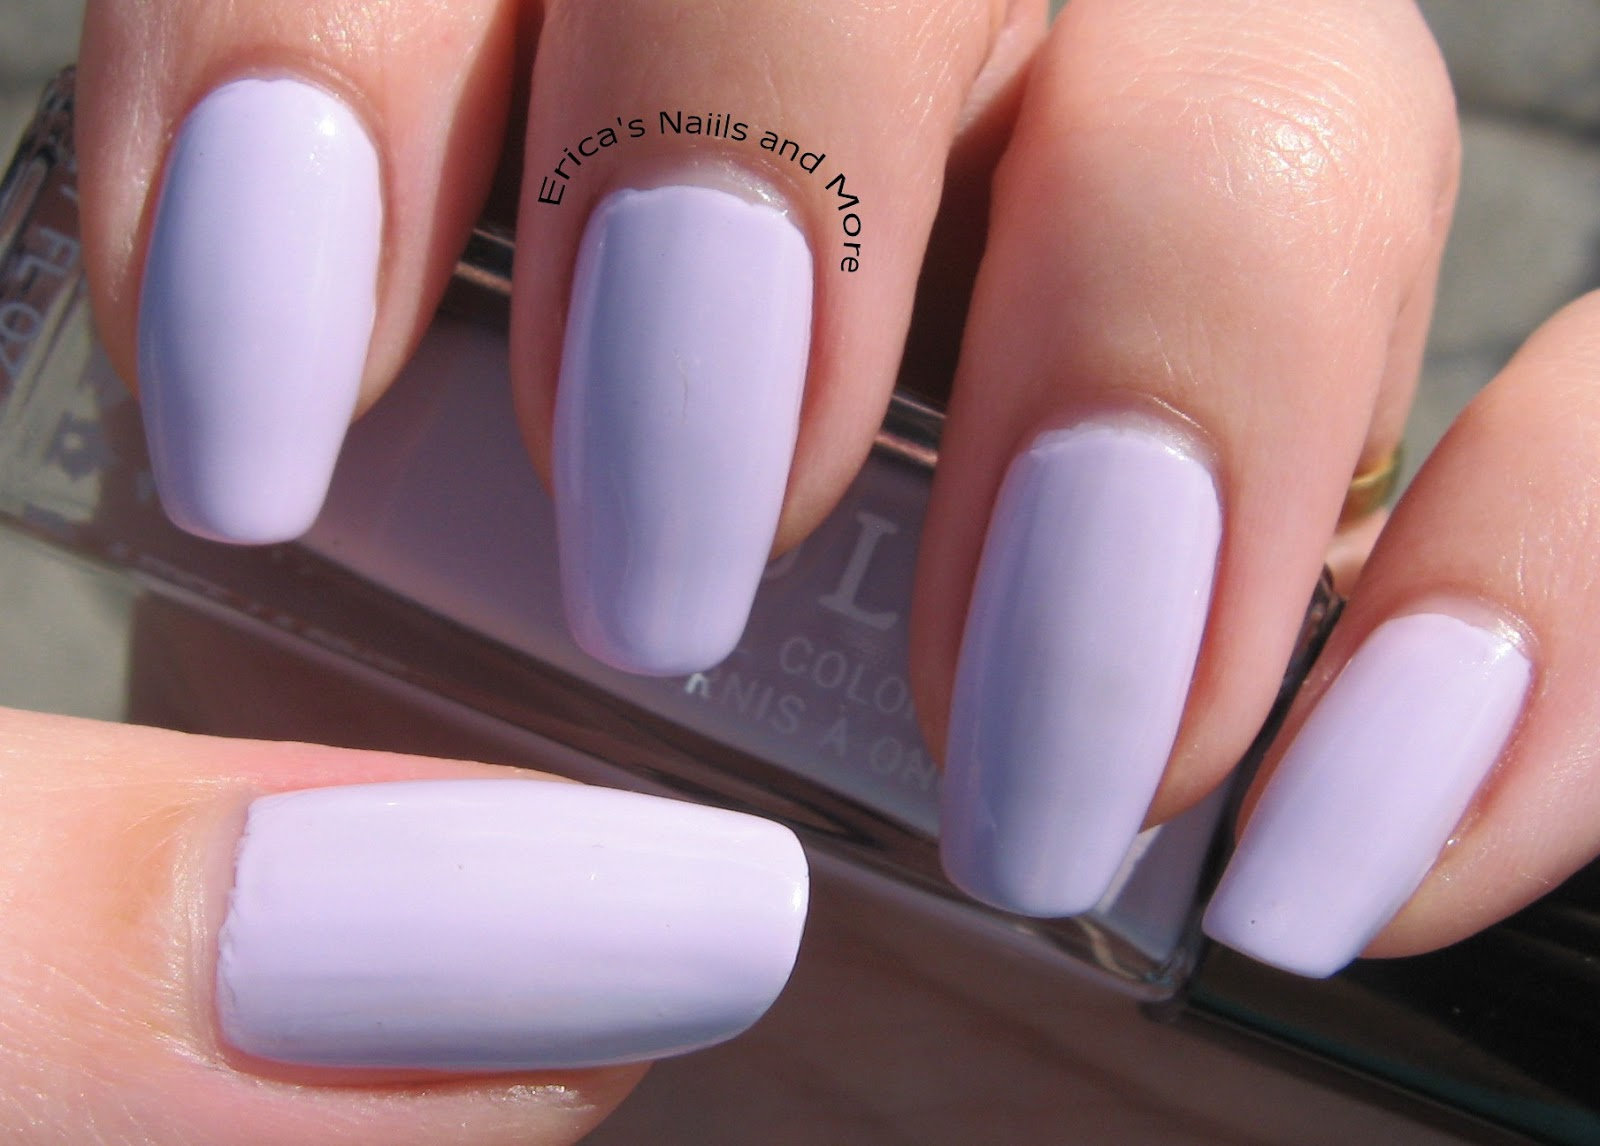 Erica's Nails and More: NOTD: Julep Renee